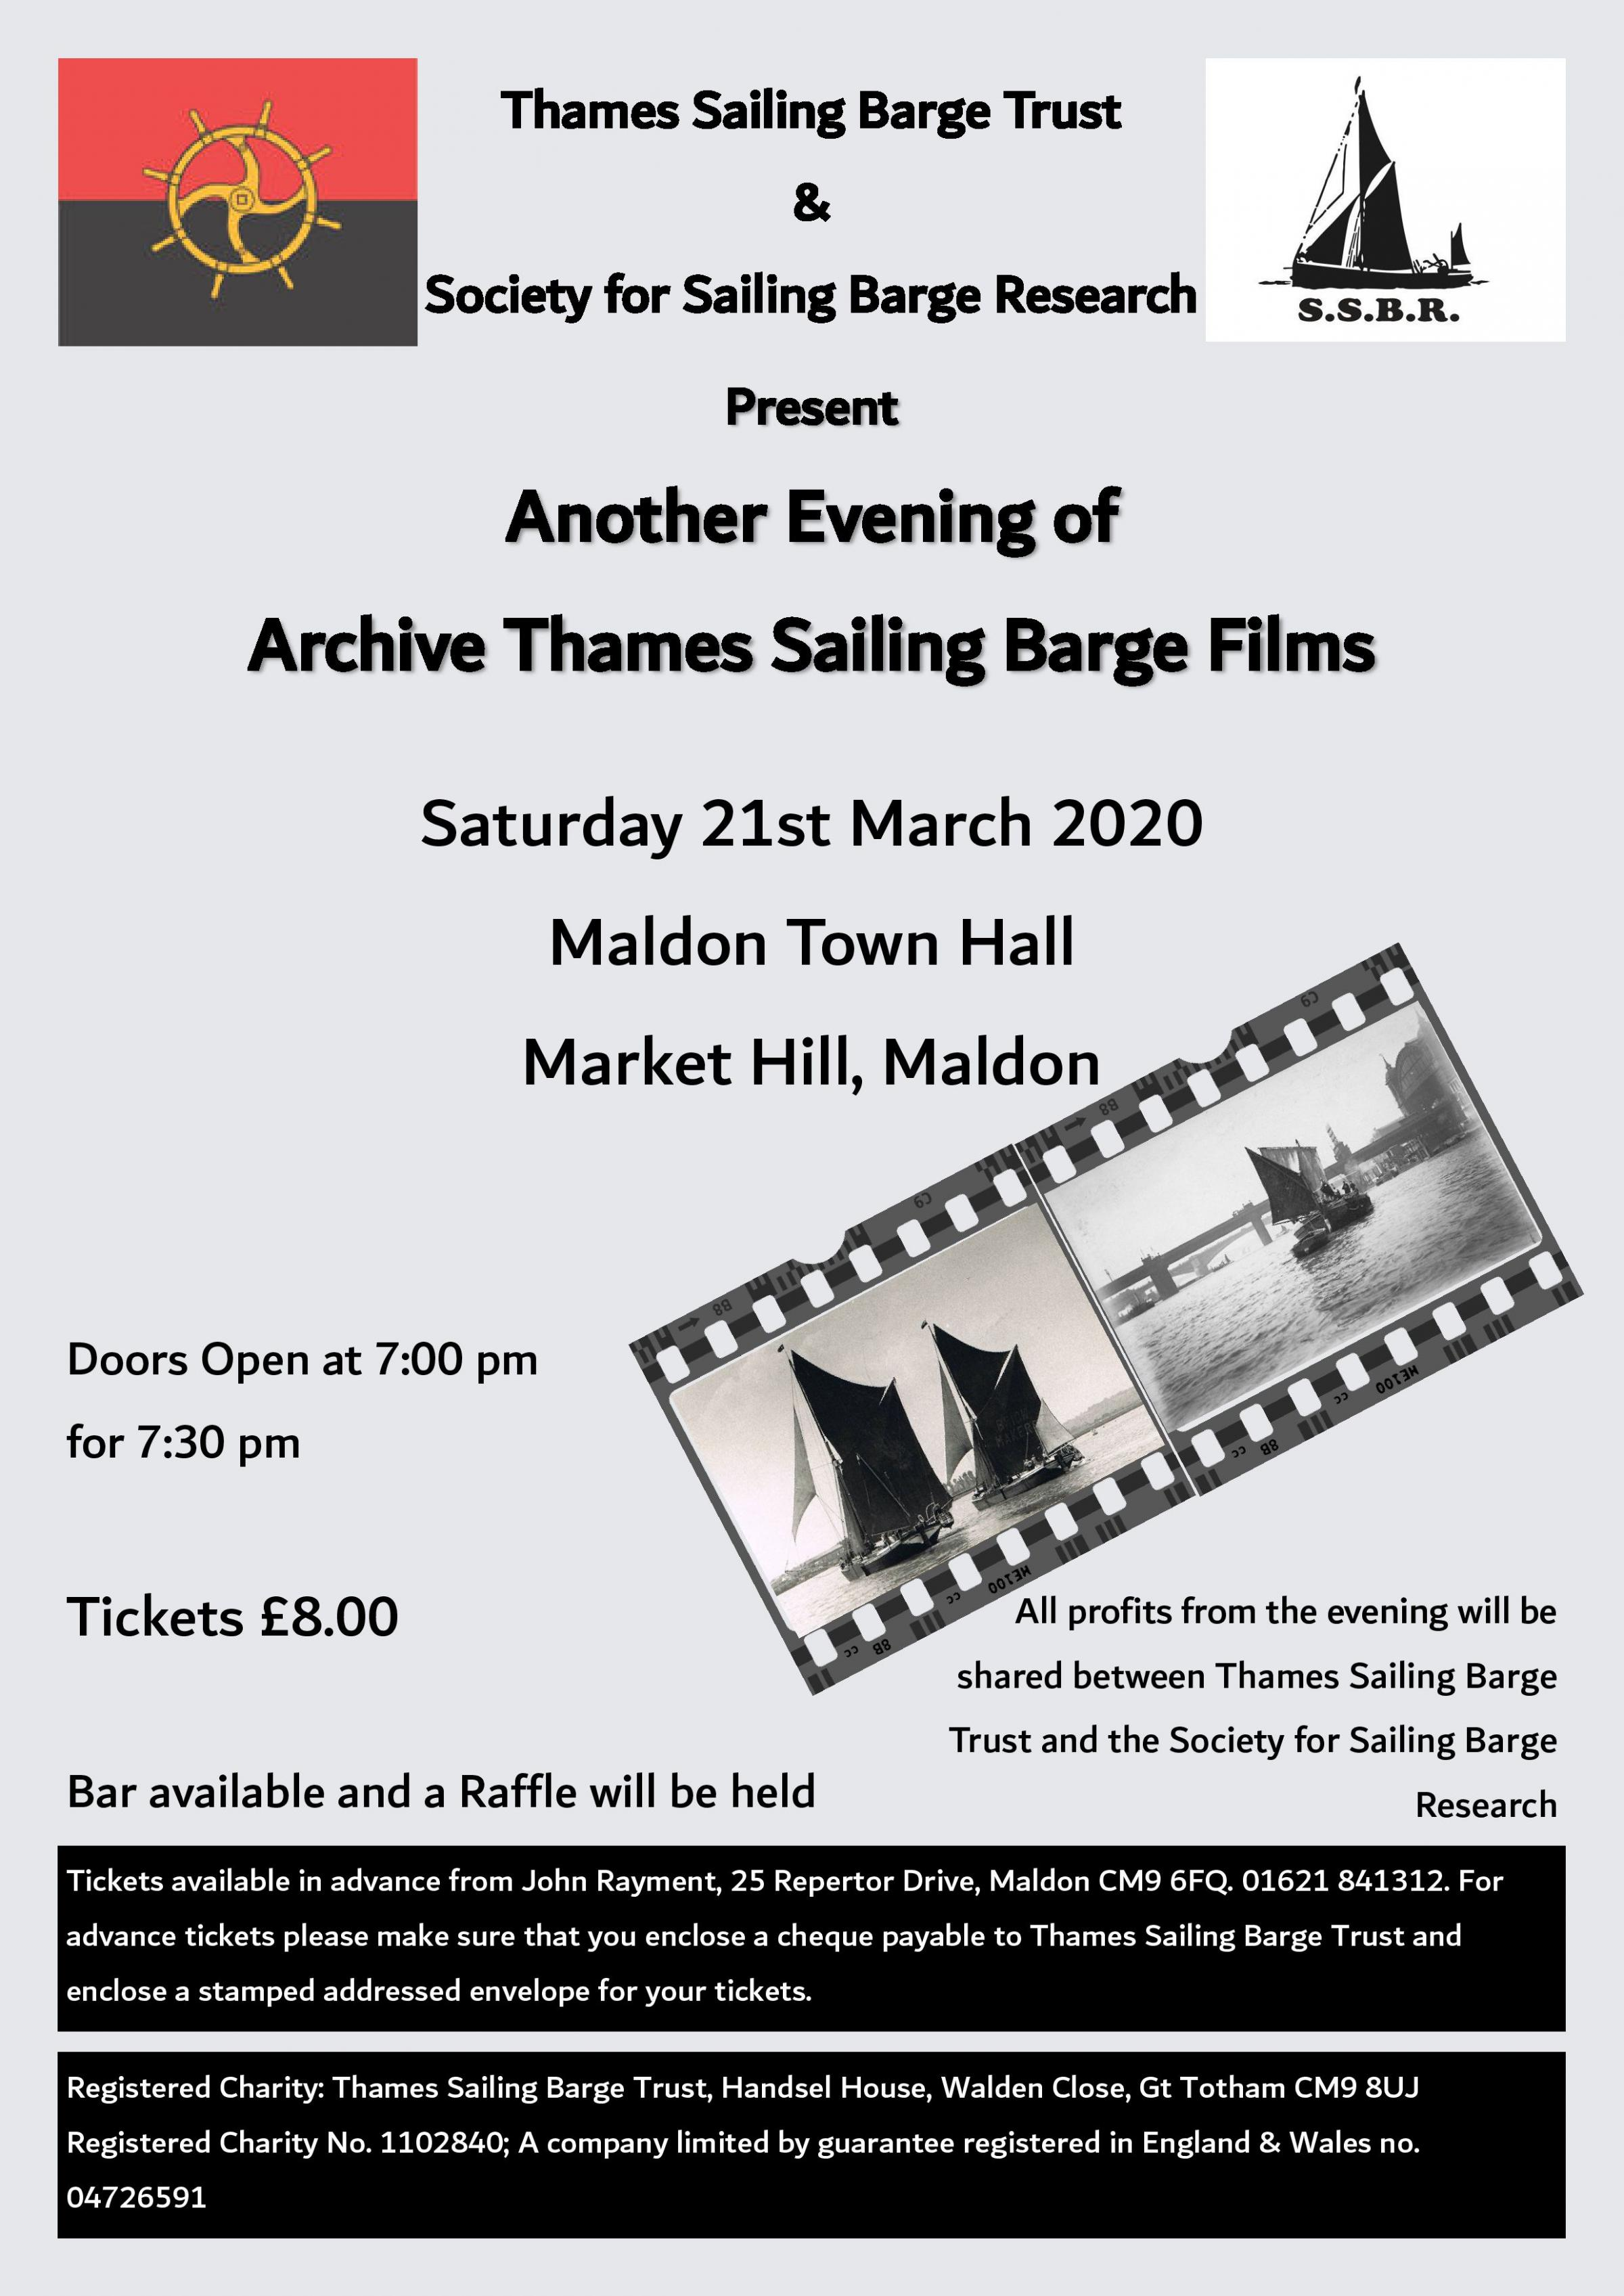 Archive Thames Sailing Barge Film Show